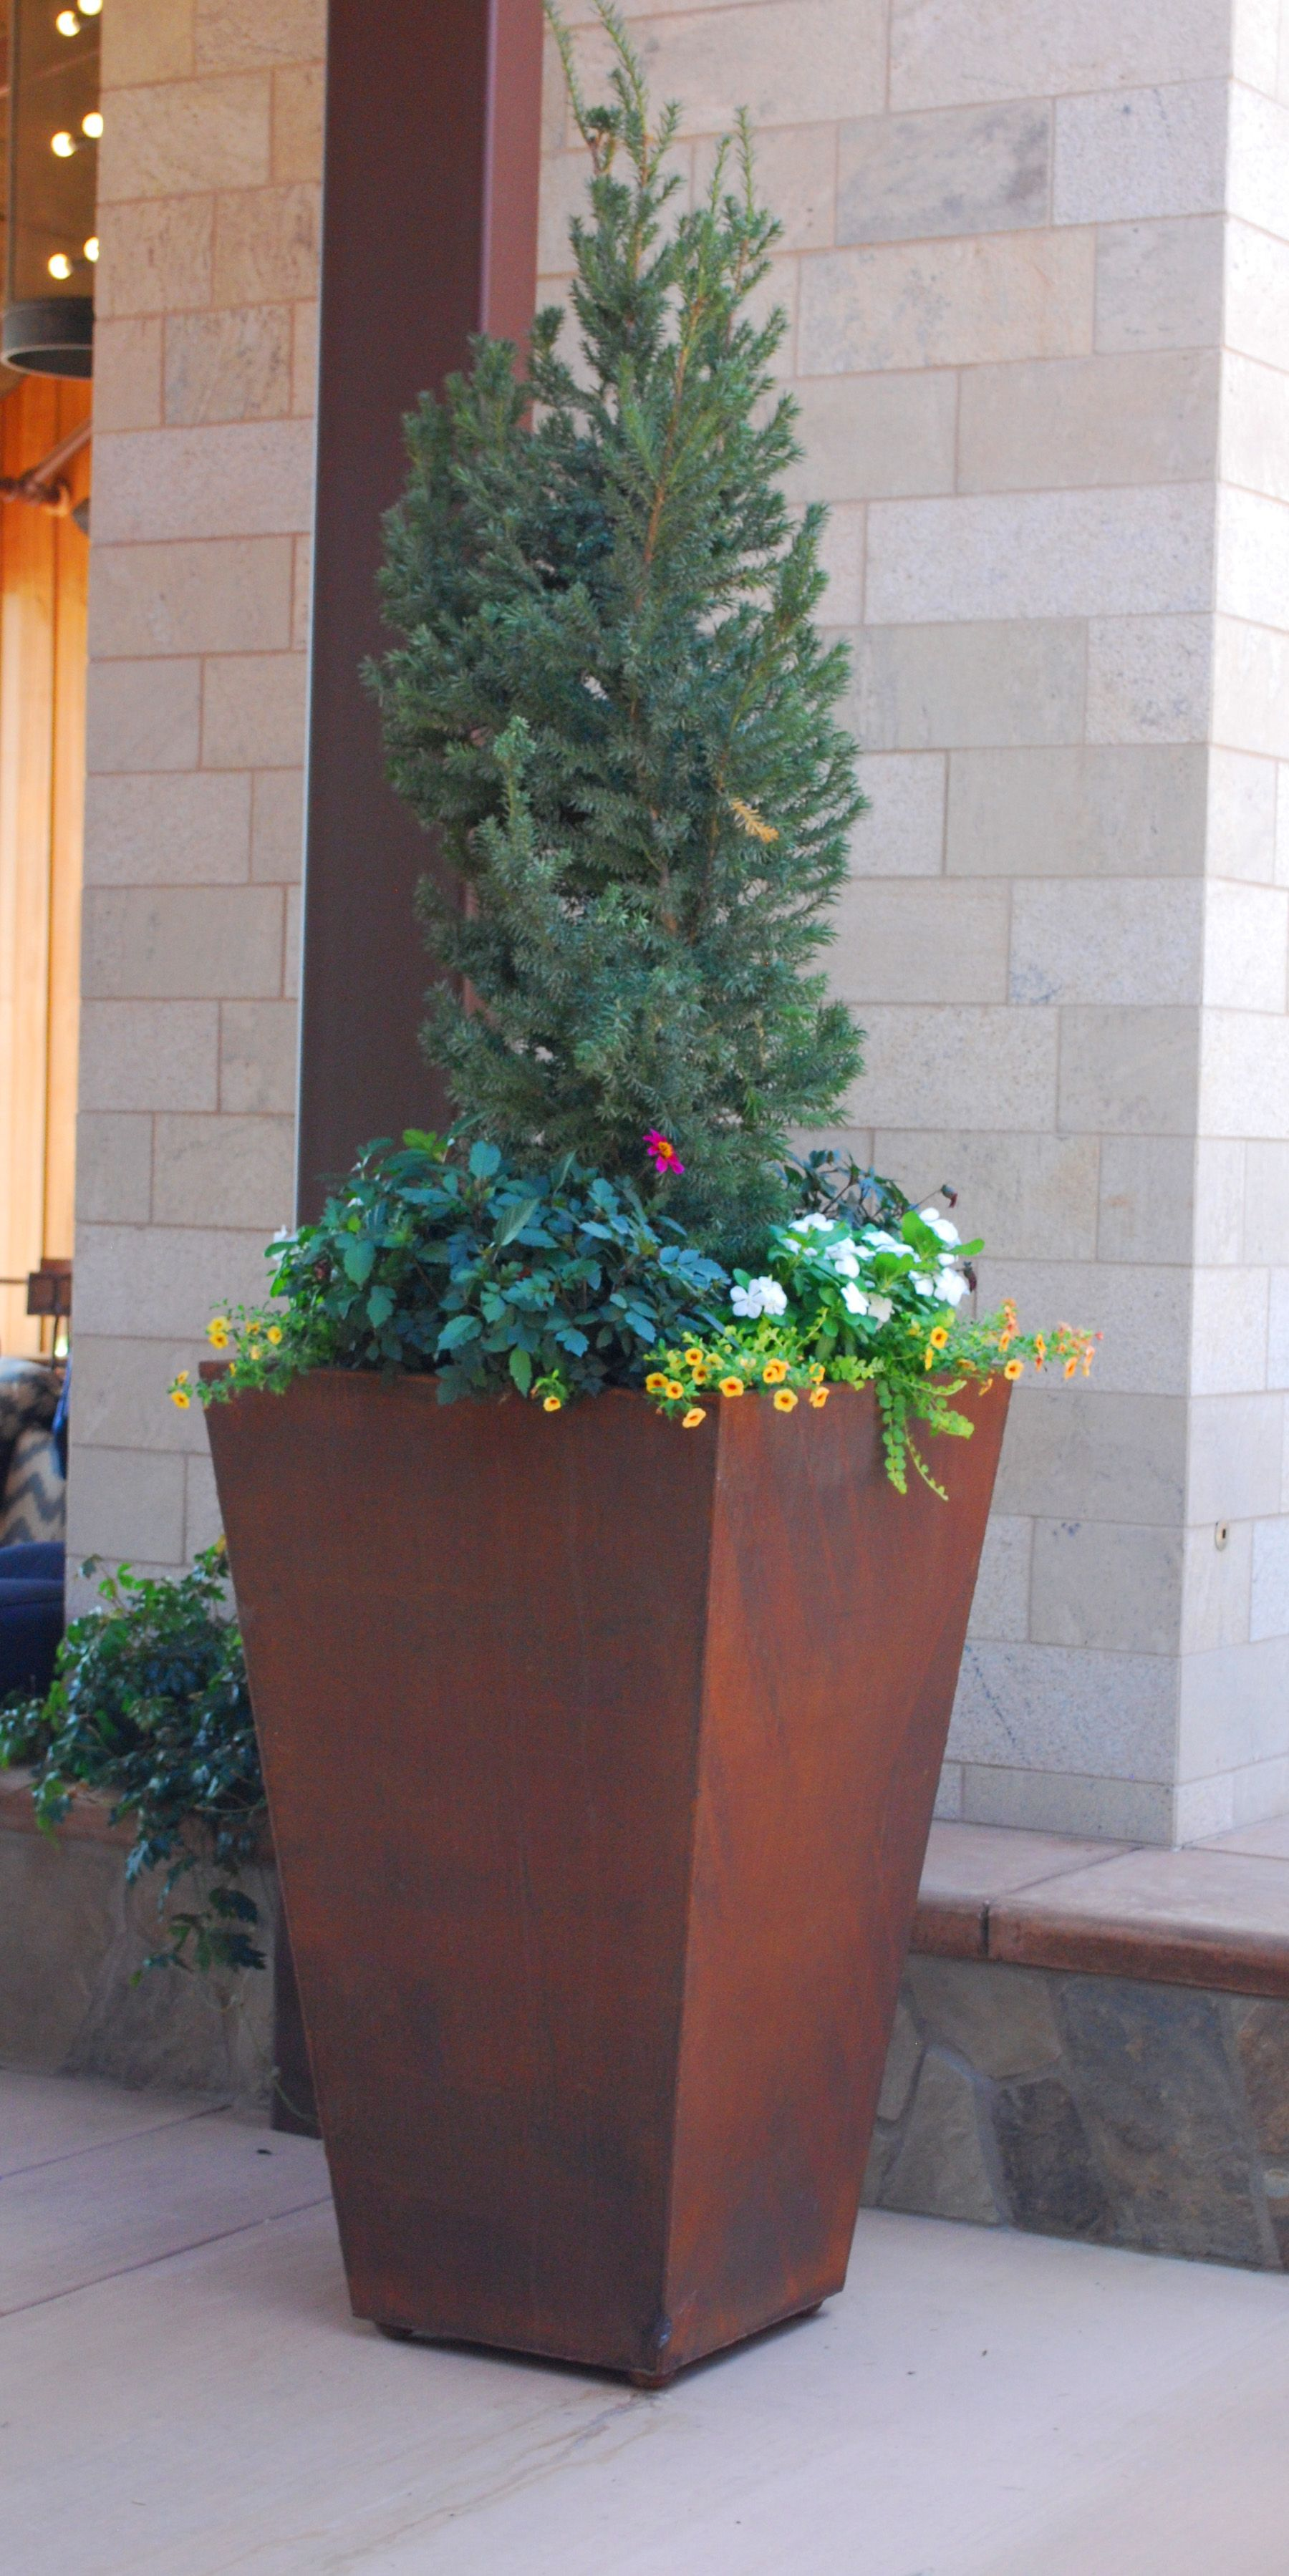 This is a 4 tall corten steel rusty planter bursting with blooms in